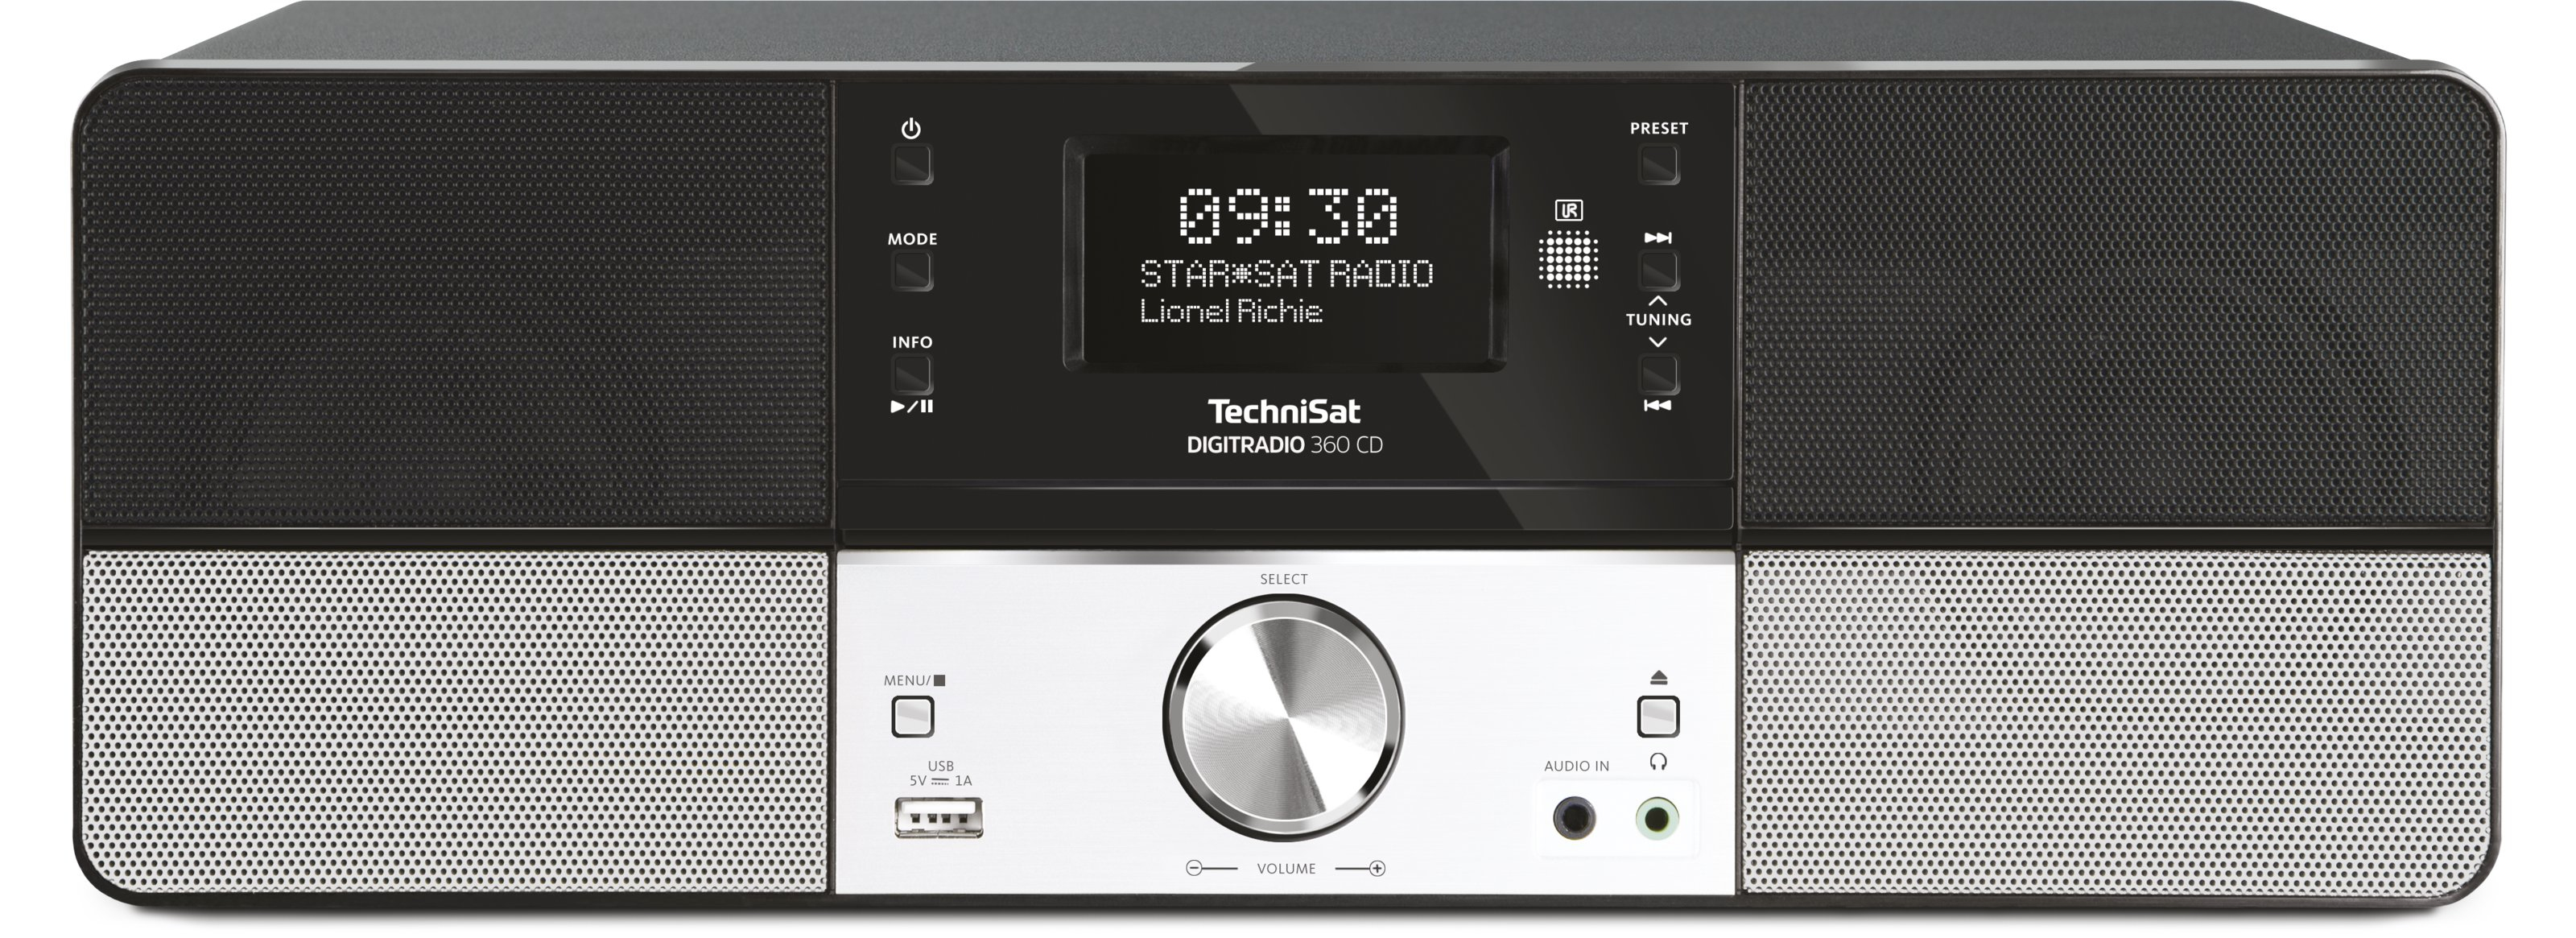 TechniSat DIGITRADIO 360 CD DAB+/UKW-Stereo-Designradio MP3-CD-Player für 149,99 Euro